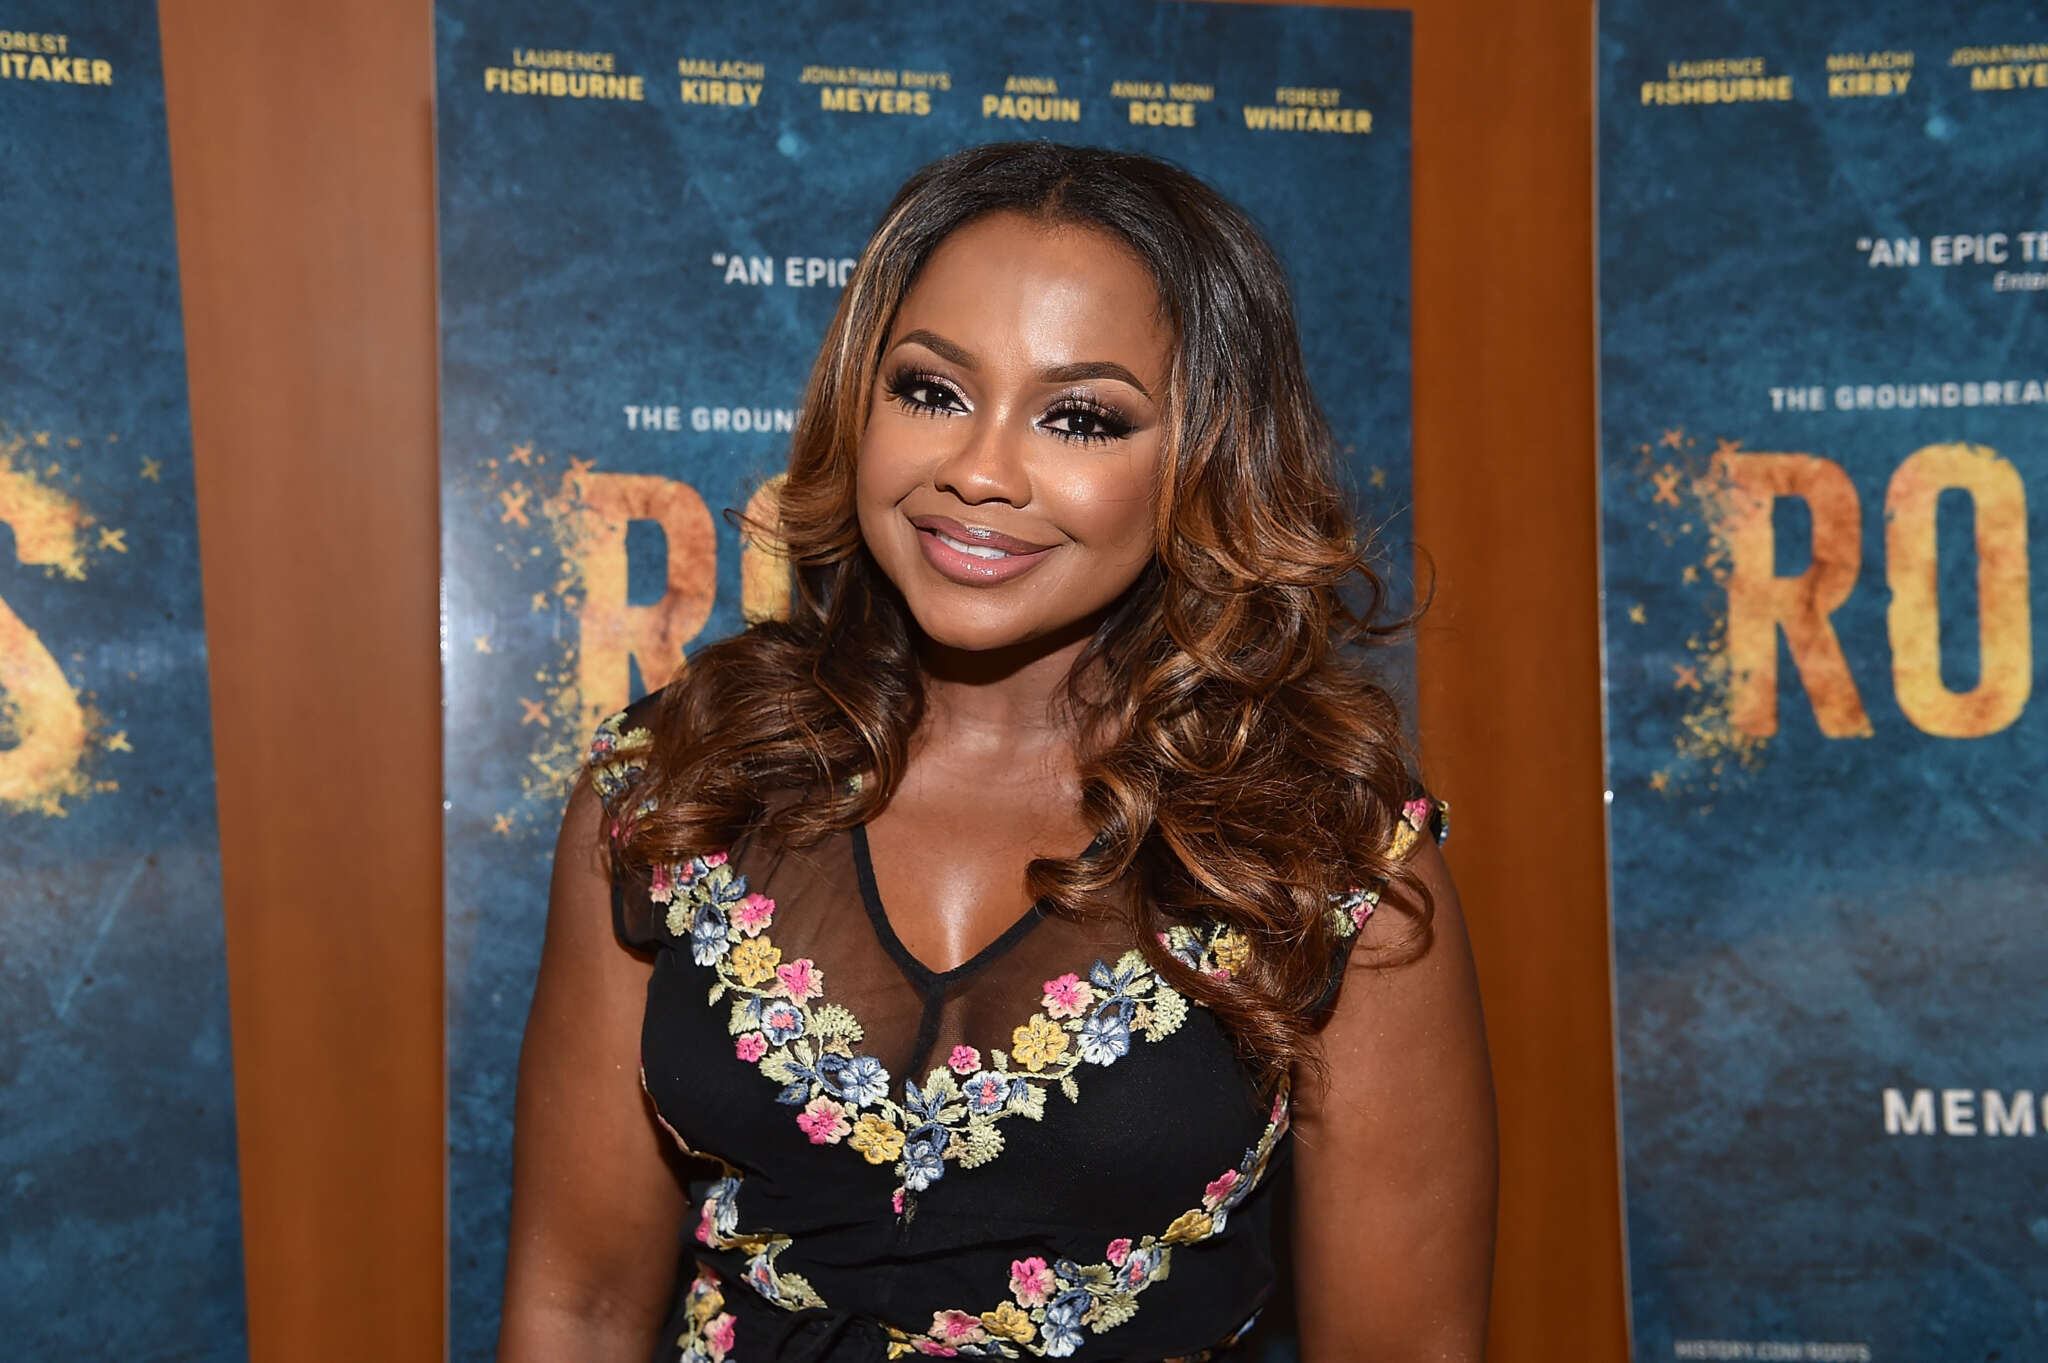 Phaedra Parks Might Have Shown A Bit Too Much Skin In This Photo – See Her Revealing Outfit